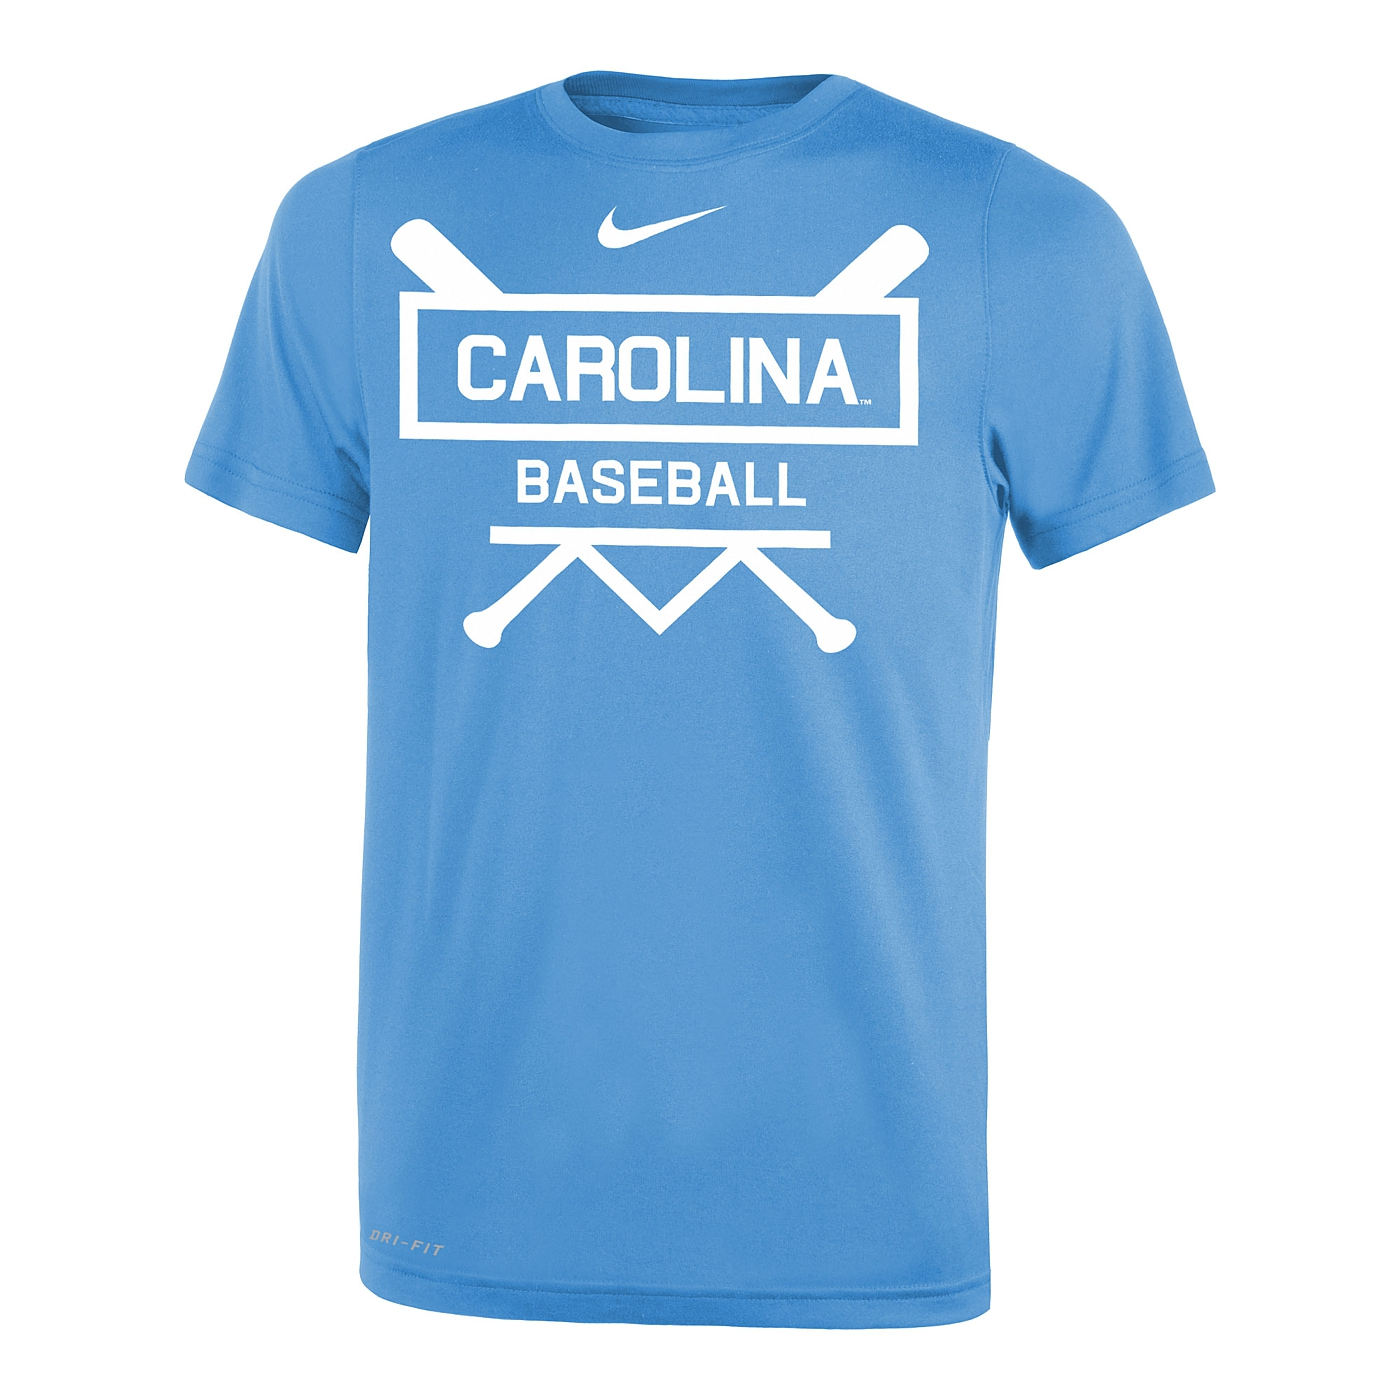 9240d845 Johnny T-shirt - North Carolina Tar Heels - Youth Baseball Name Plate  Legend T (CB) by Nike